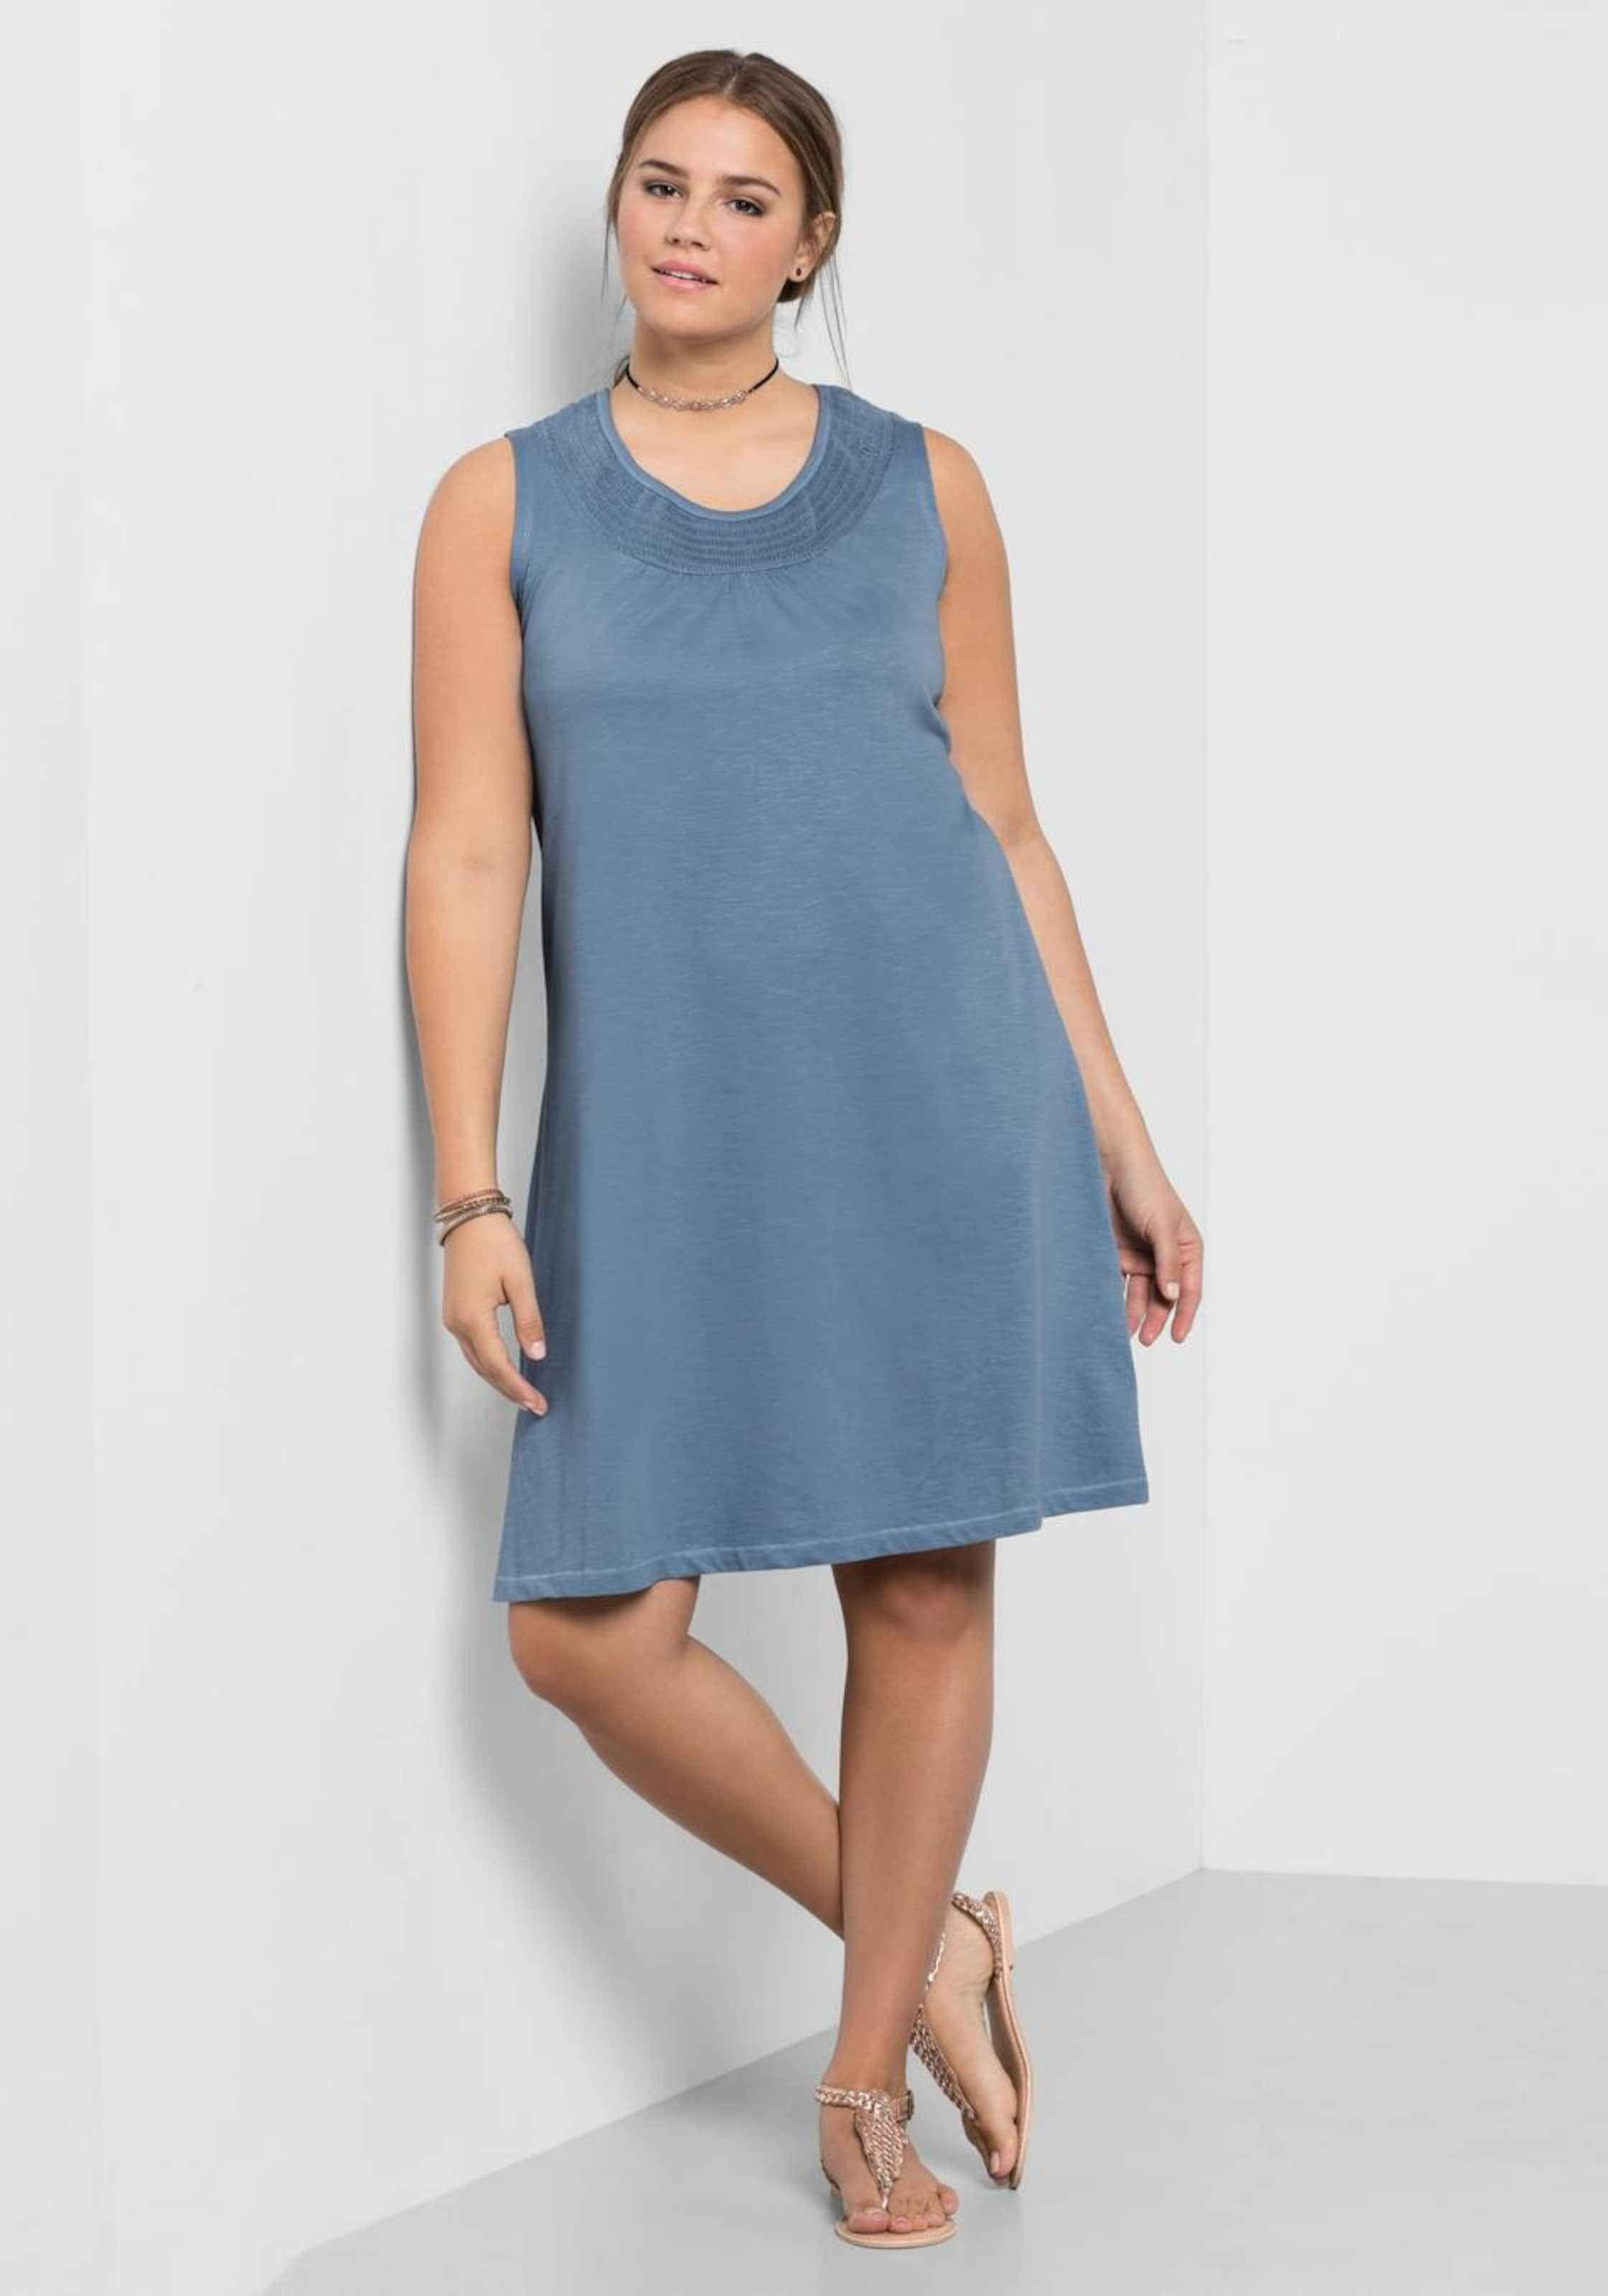 Sheego Kleid In Casual Royalblau Royalblau Casual Kleid Kleid Casual Sheego Sheego In In pUVMSzLqG